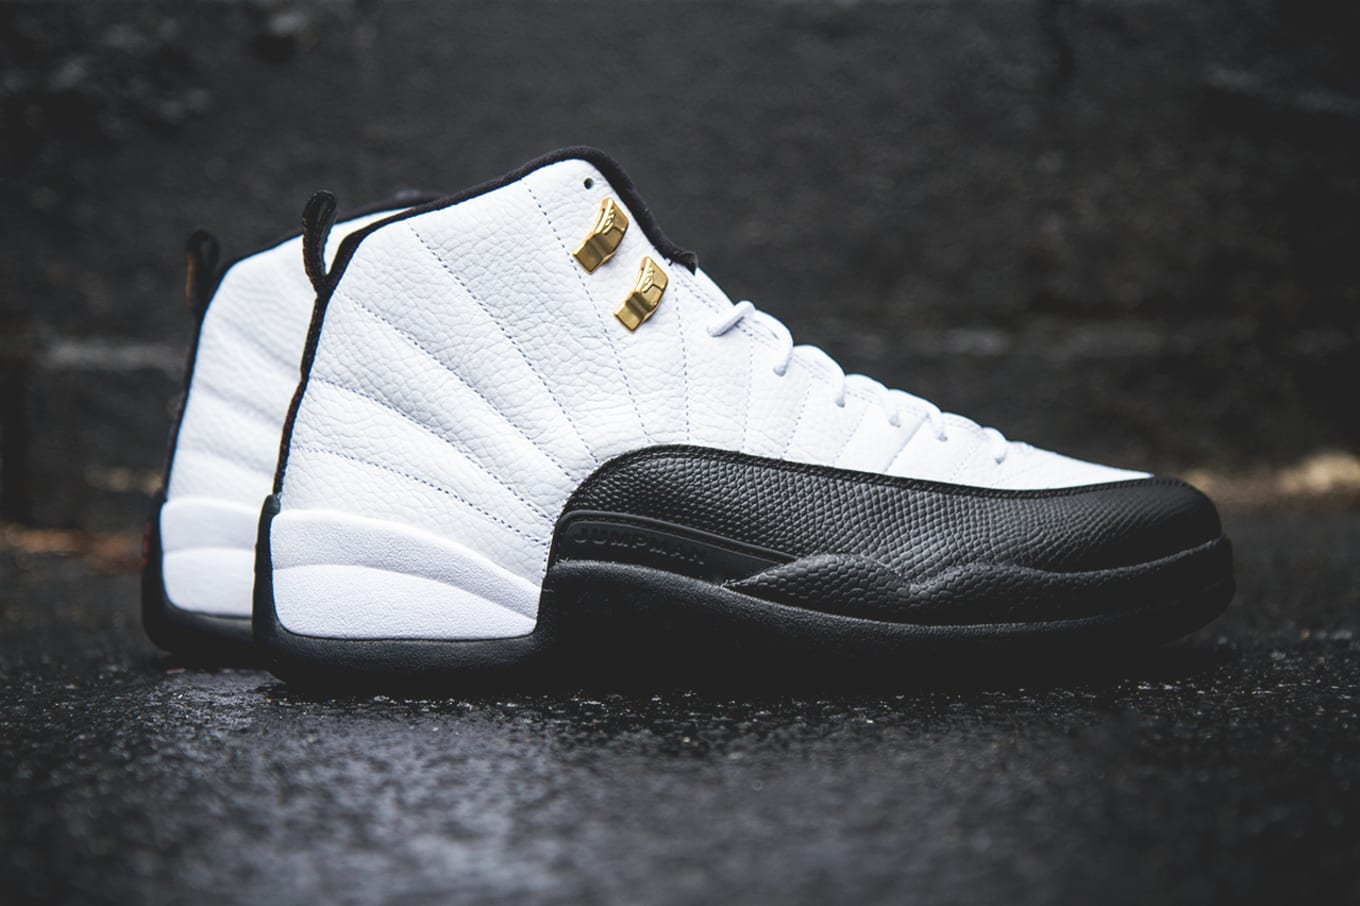 59bbd44376b Air Jordan 12 Taxi 2017 Release Date 130690-125 | Sole Collector